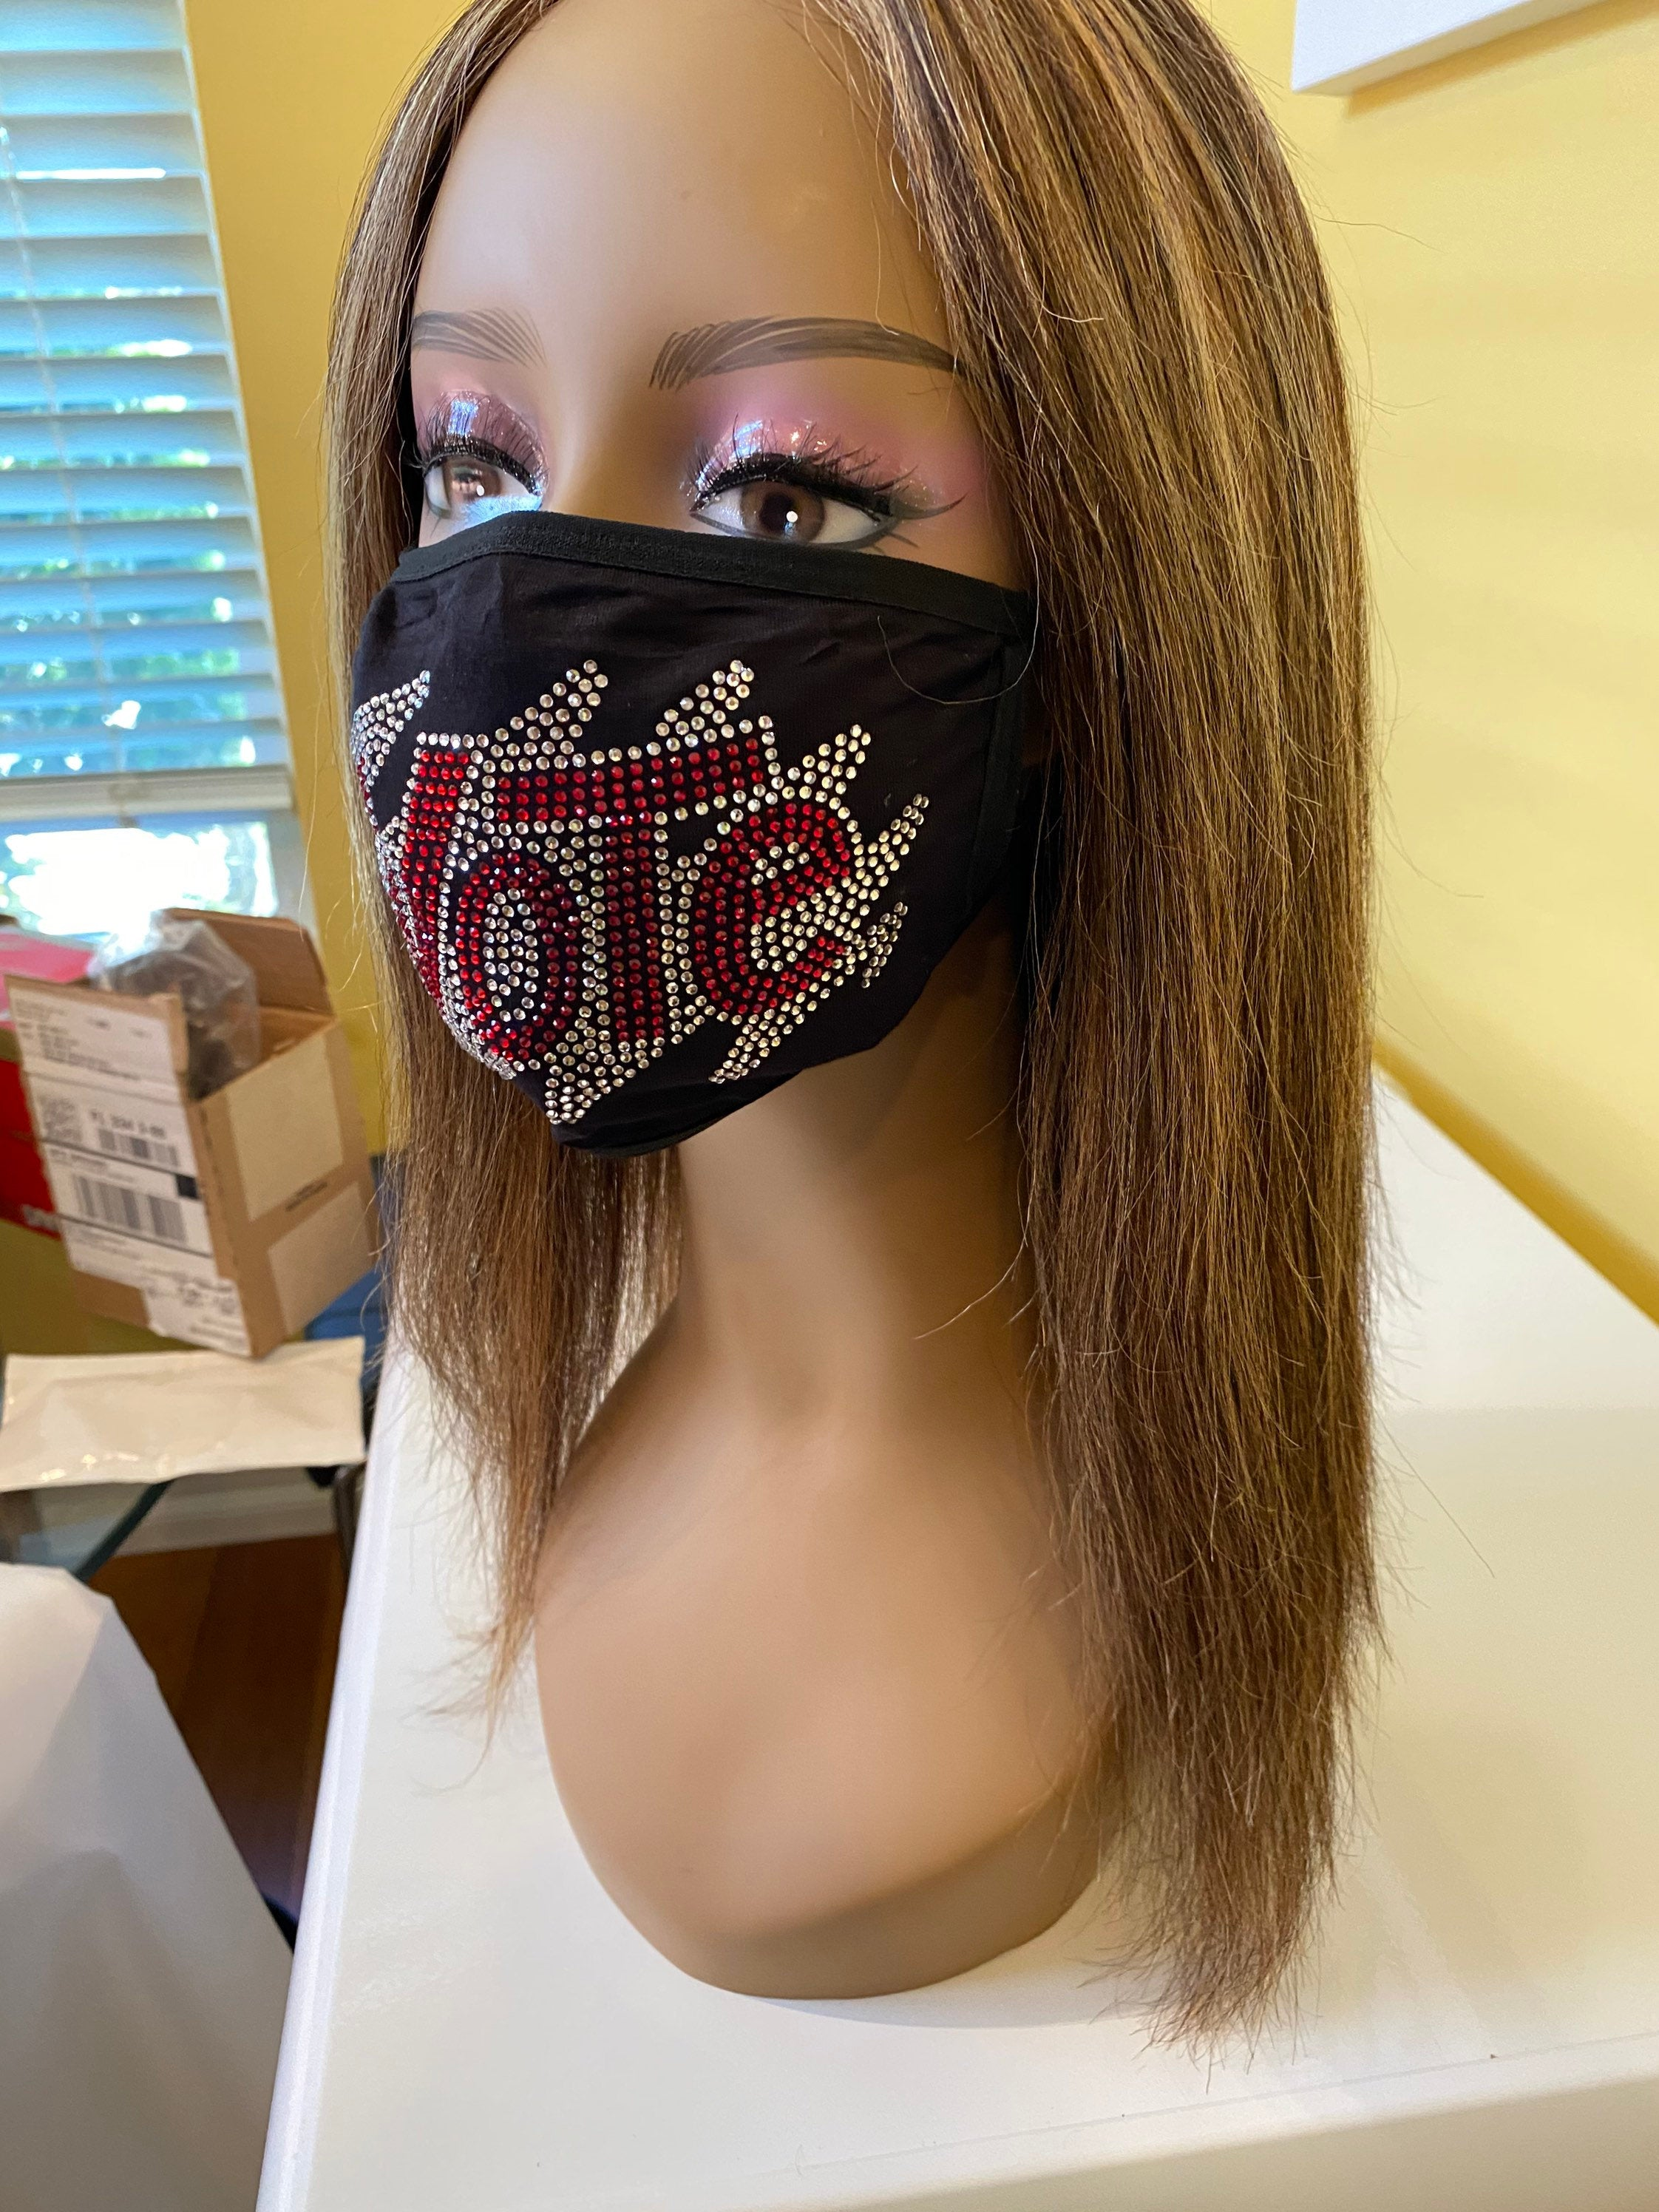 VOTE Bling Rhinestone Face Mask With Filter Pocket Red | Simply For Us